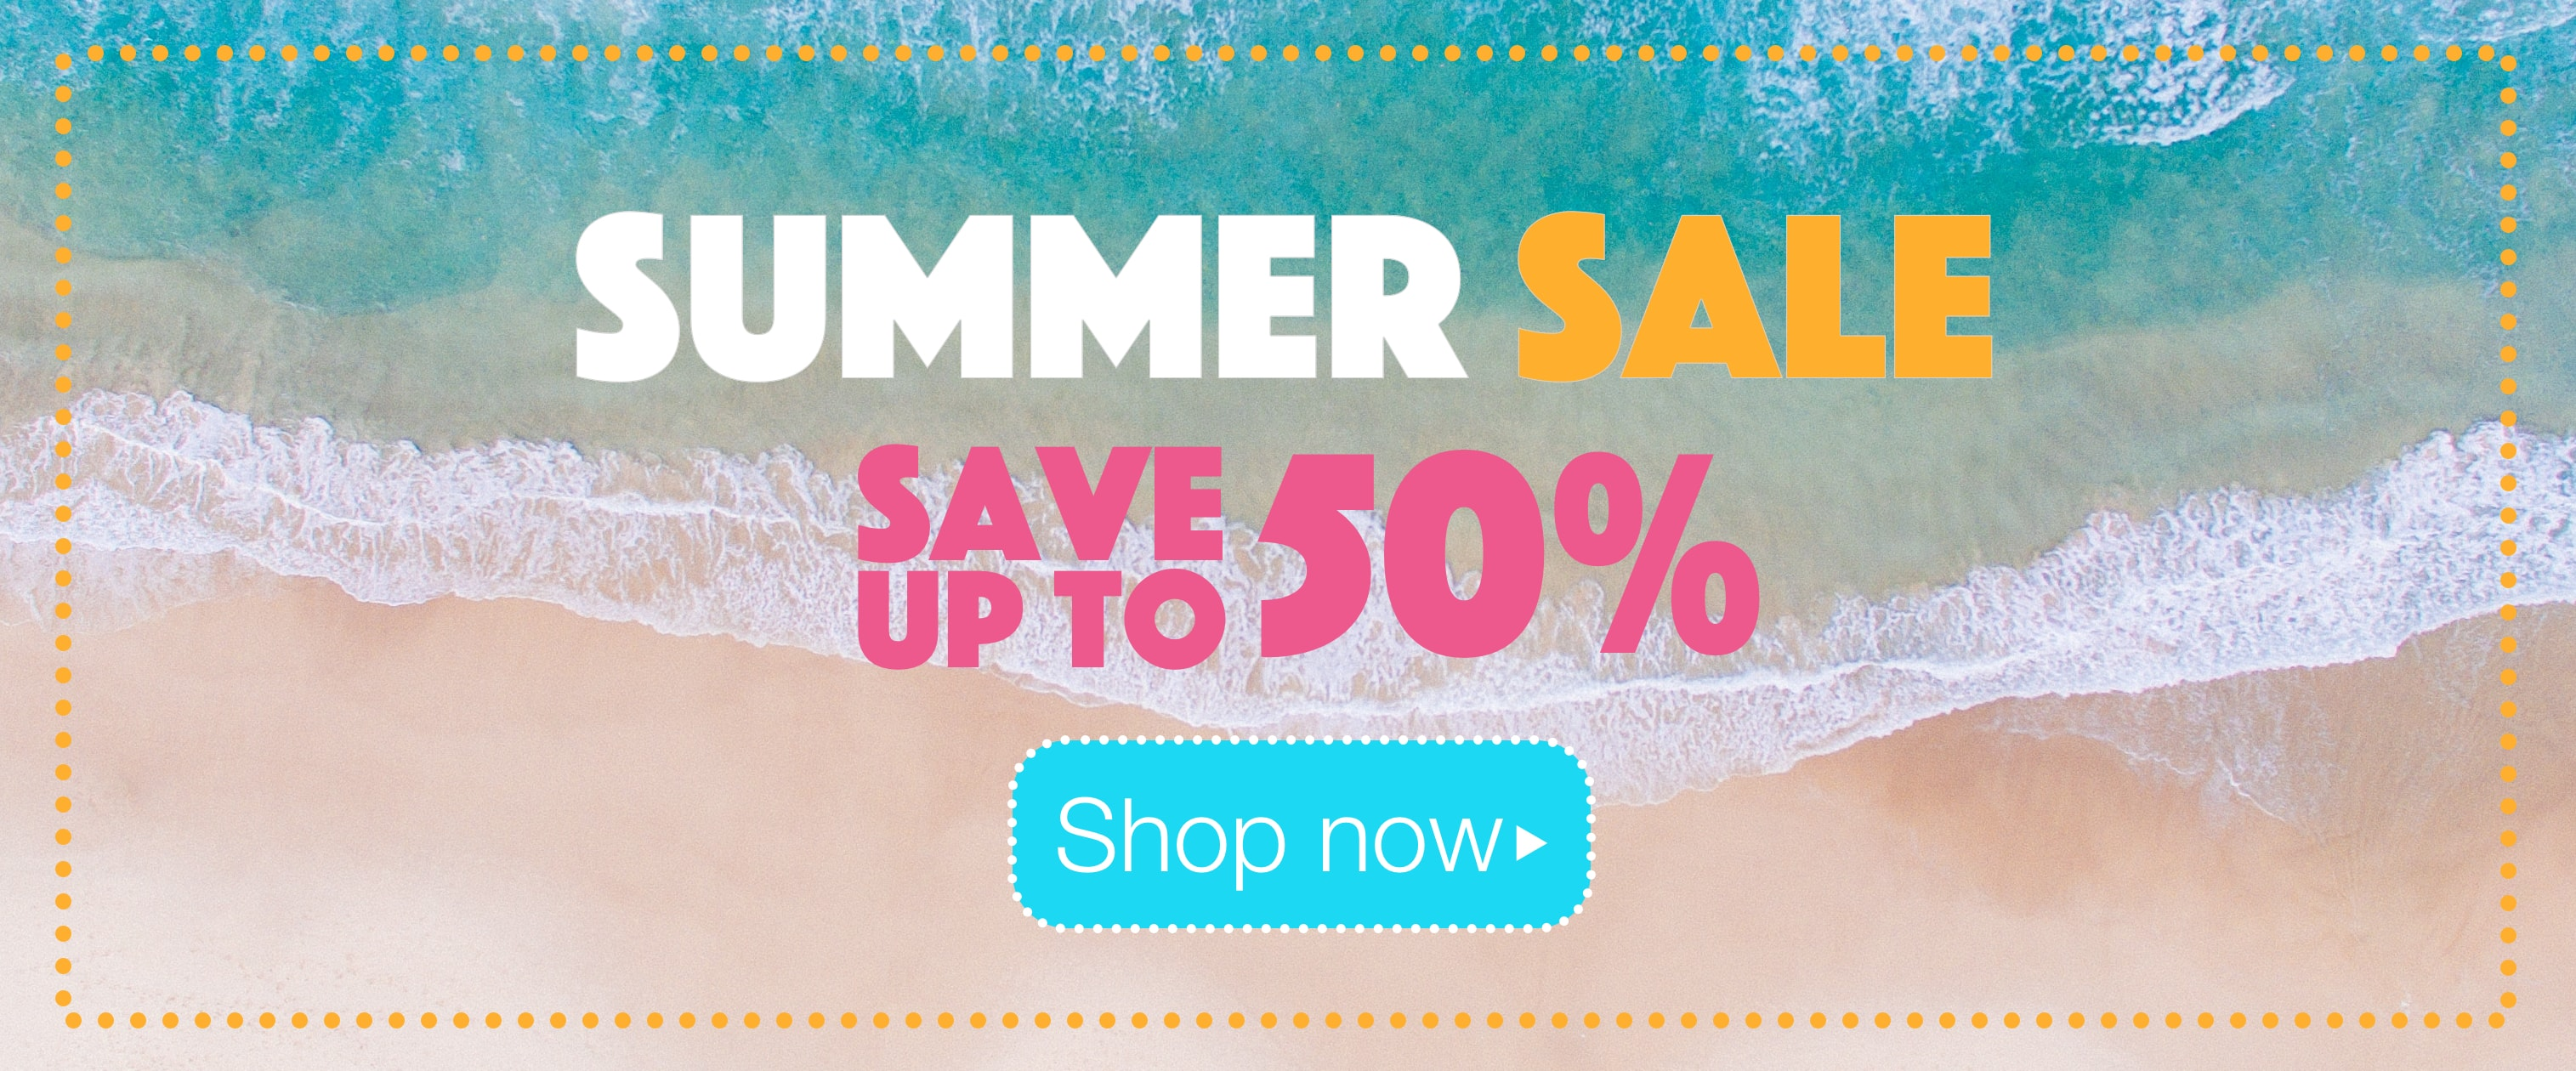 Jane Summer Sale - Save up to 50%